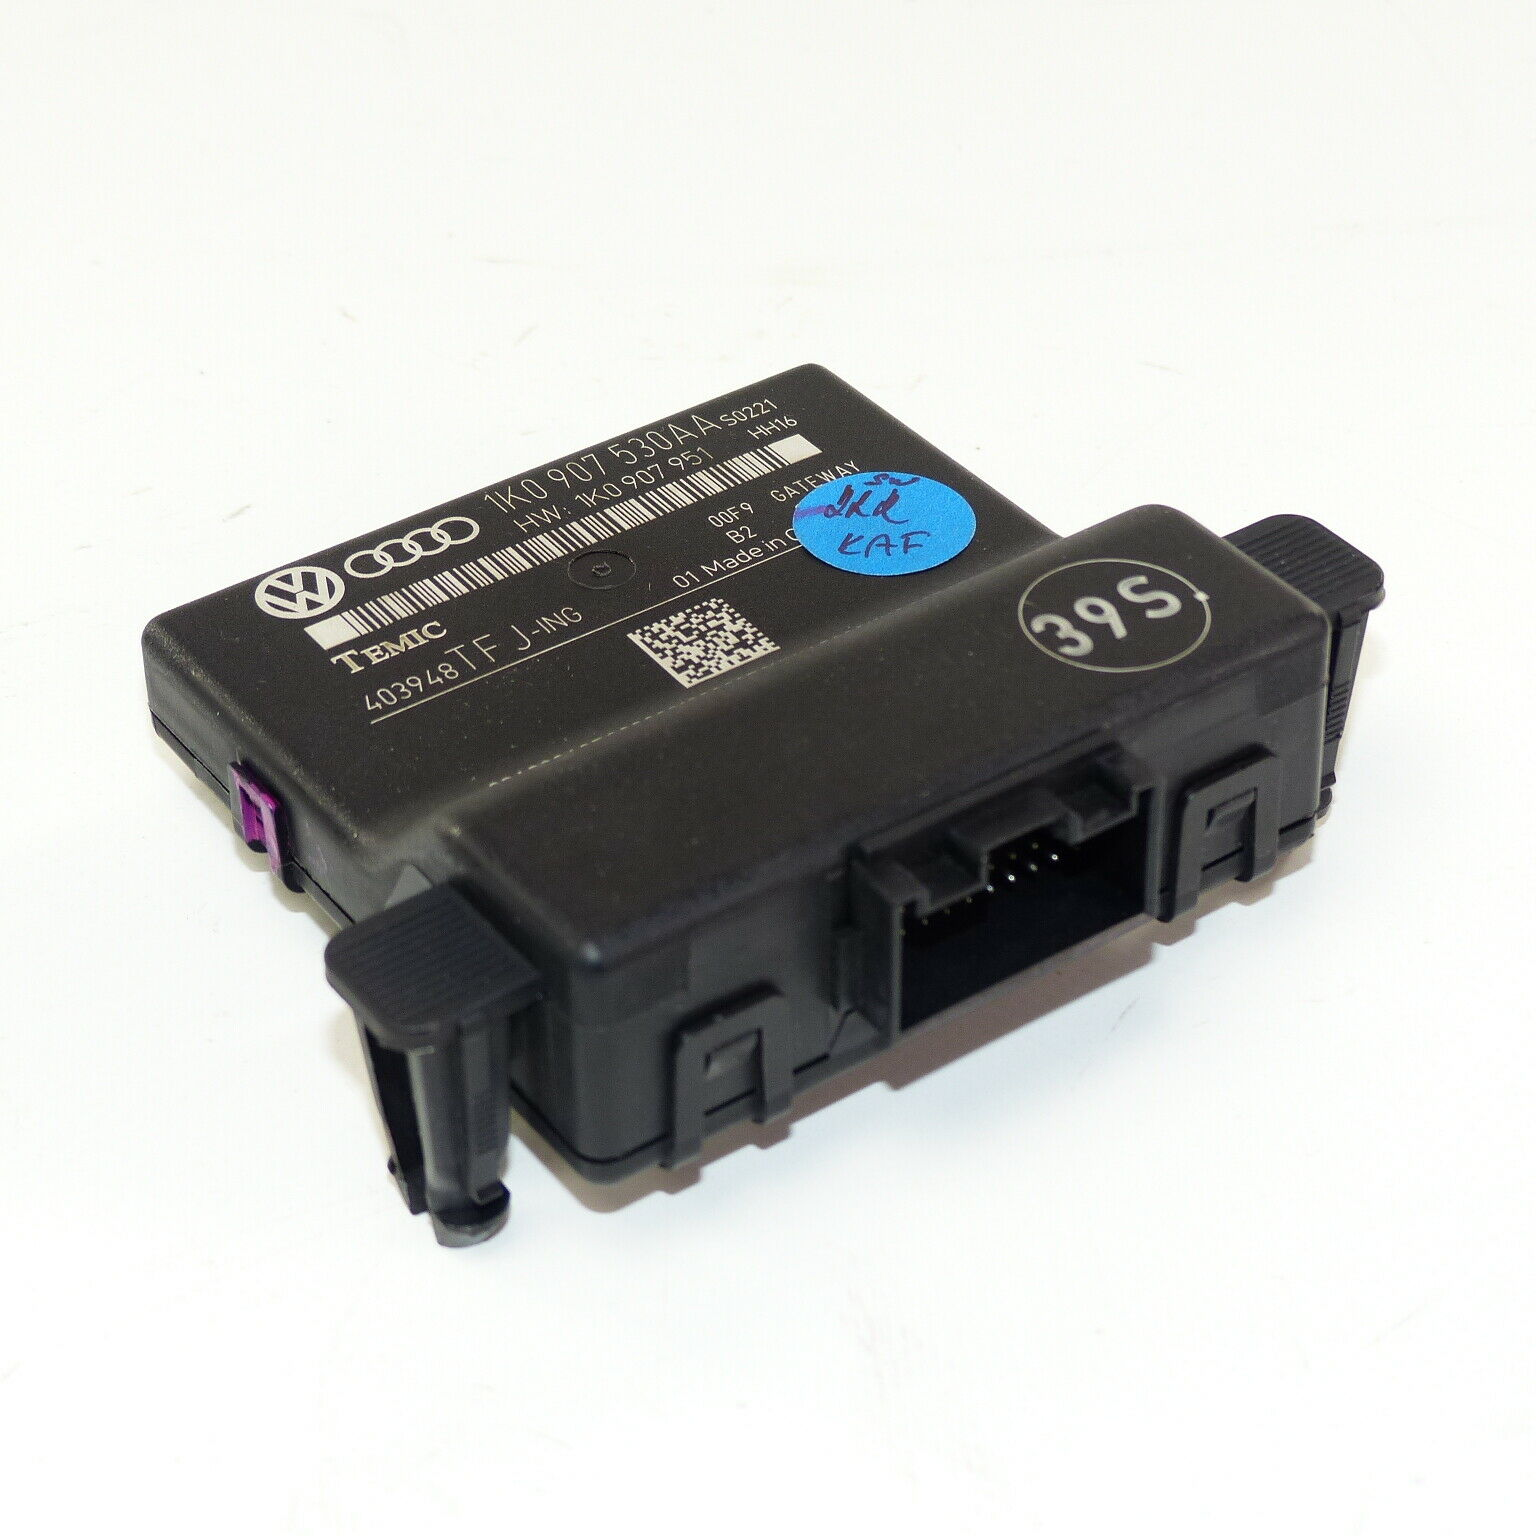 Steuergerät Gateway Interface Datenbus 1K0907530AA Skoda Yeti 5L VW Tiguan 5N